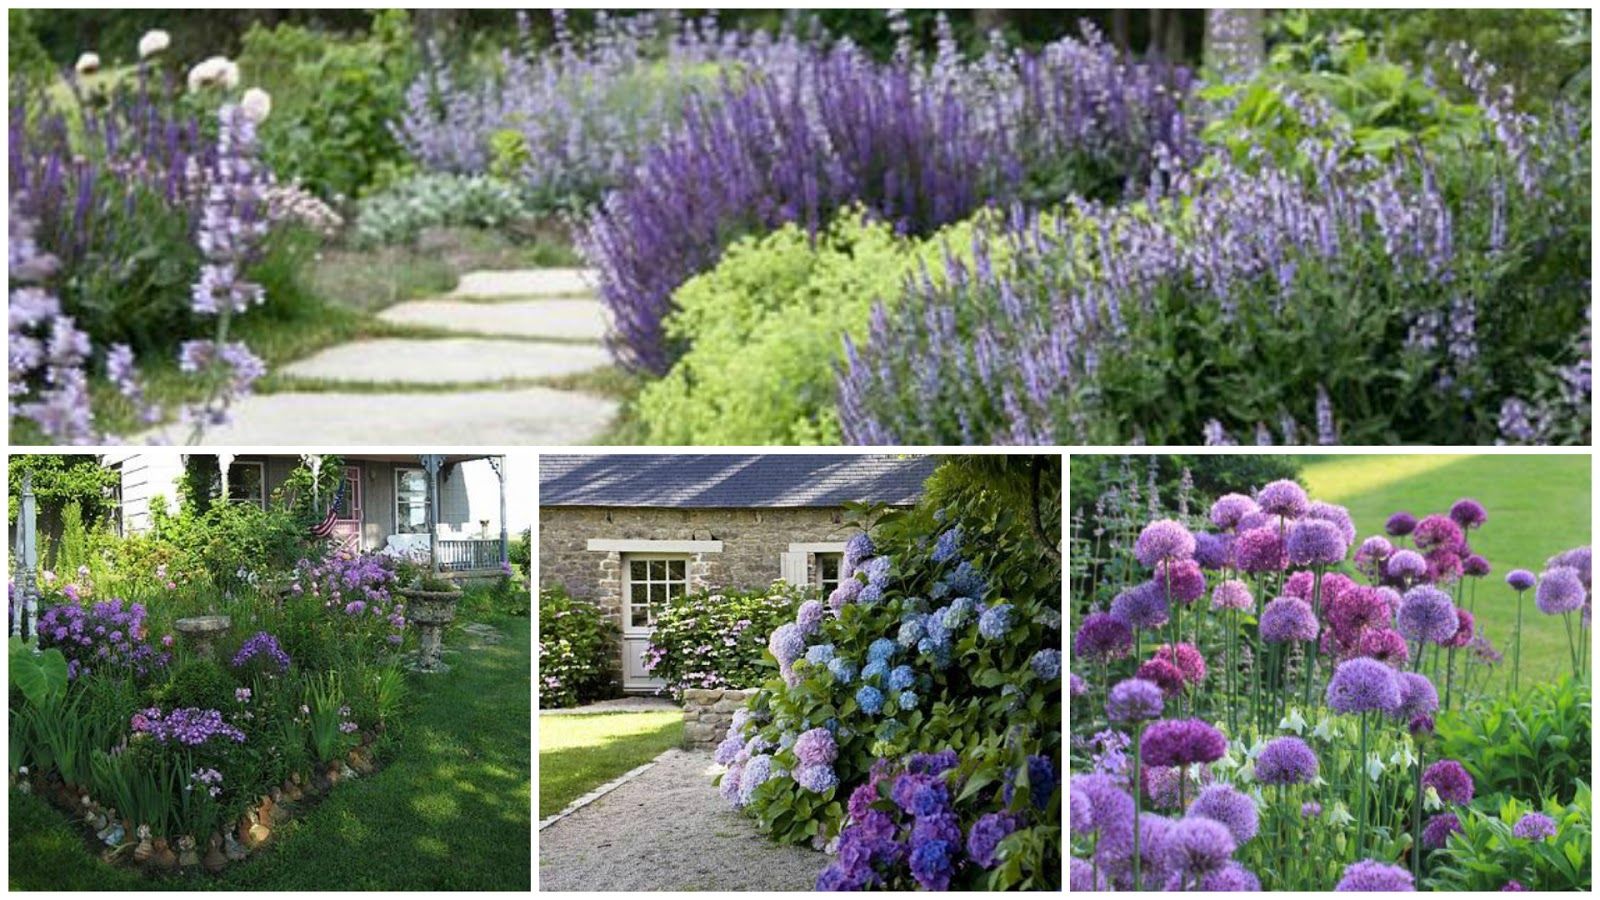 Cottage Garten Planung Eines Cottage Gardens... - Beachhouse Living